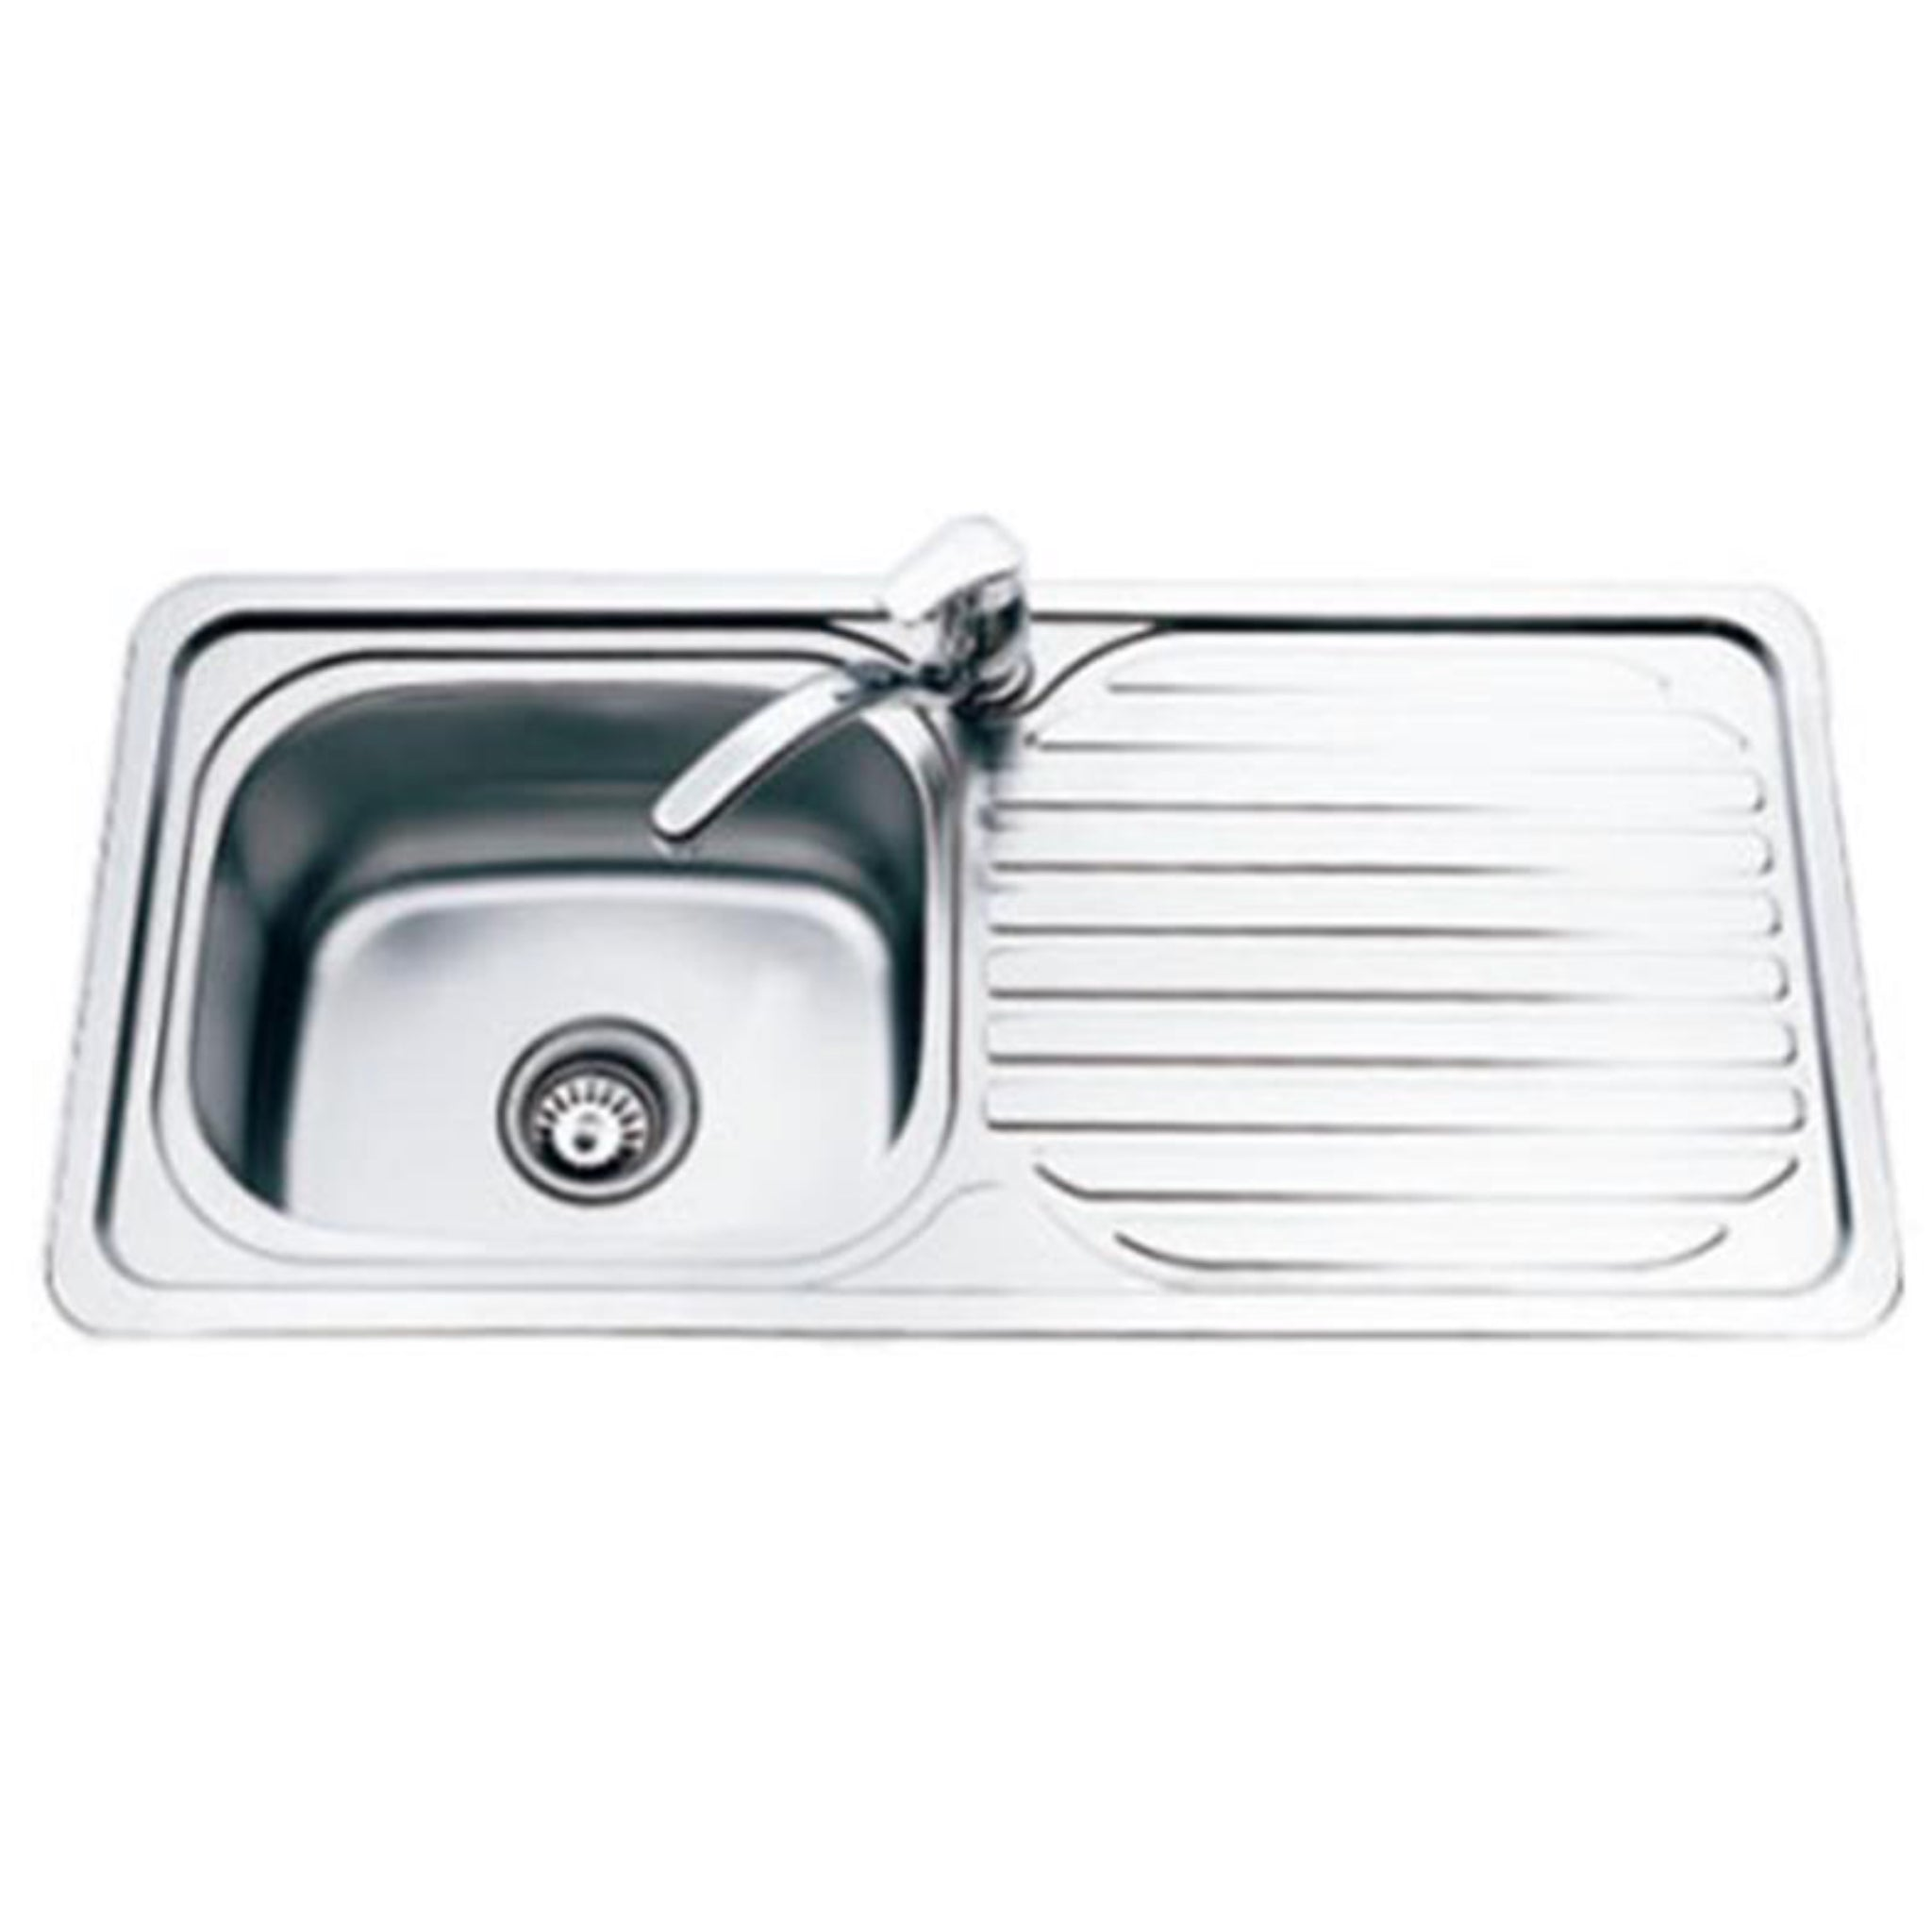 Top Mount Kitchen Sink (1 Bowl & 1 Drainer)